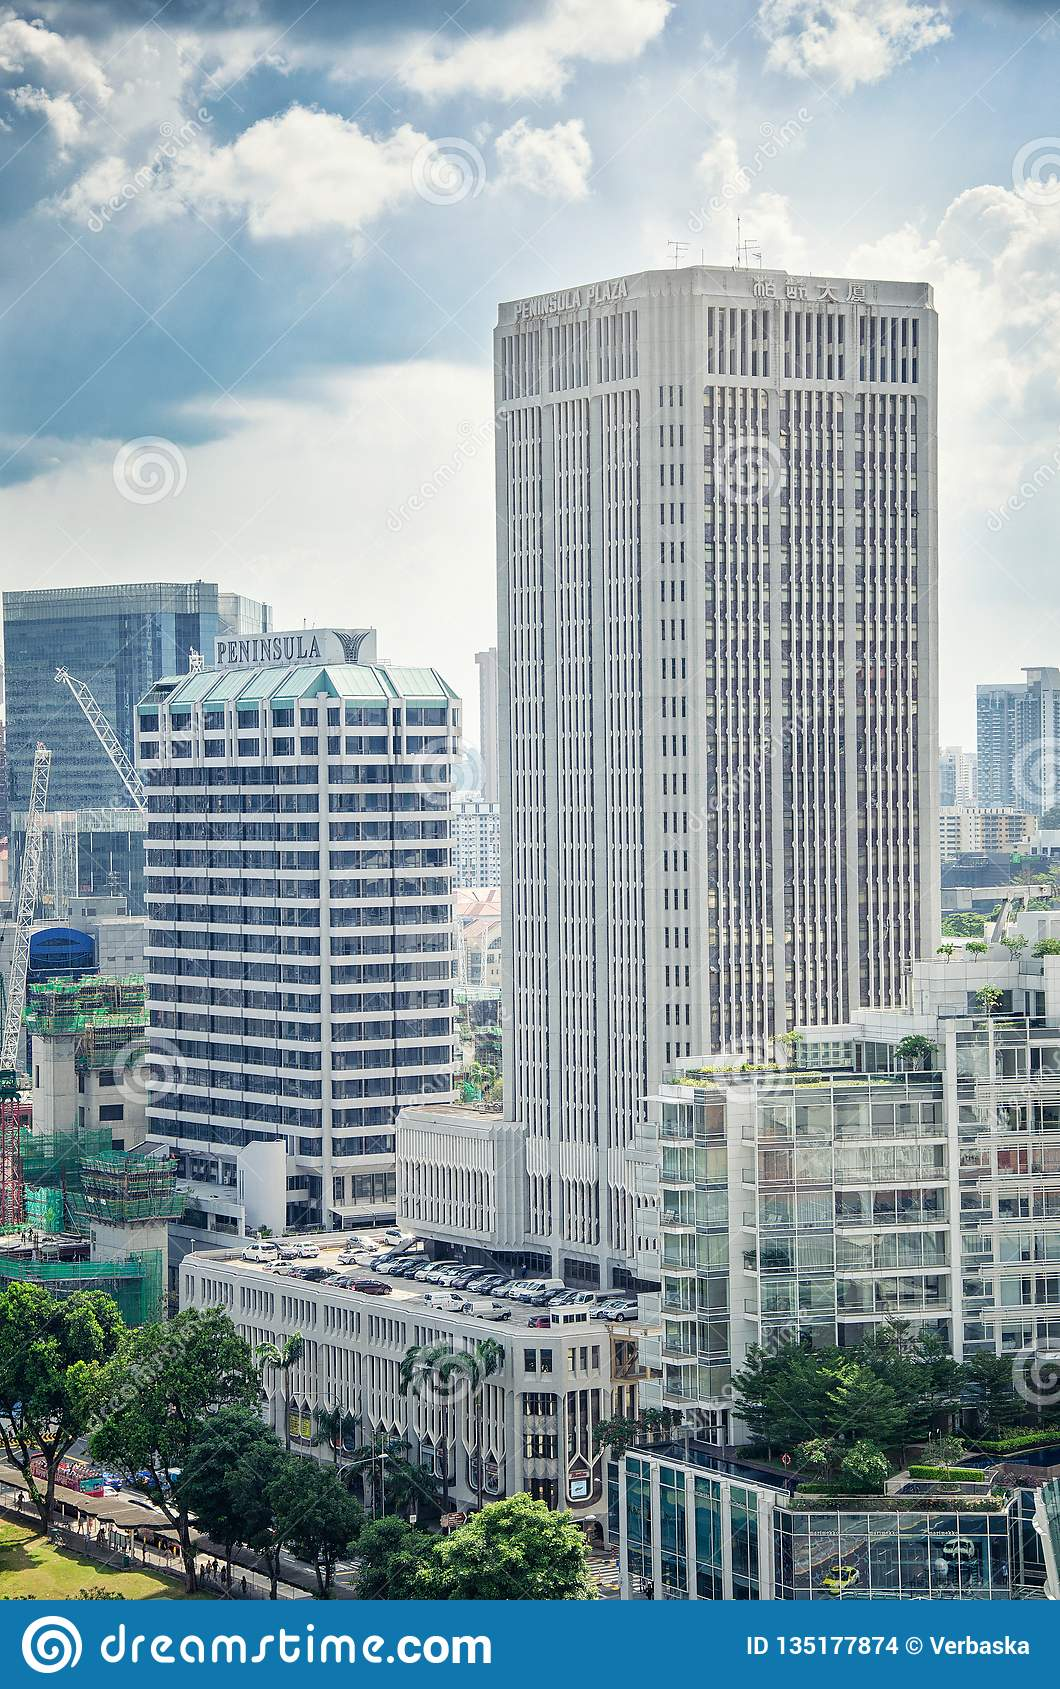 Tall square rectangular of Peninsula Plaza 30-floor tower distinguishes from other towers by its external grey ribs.